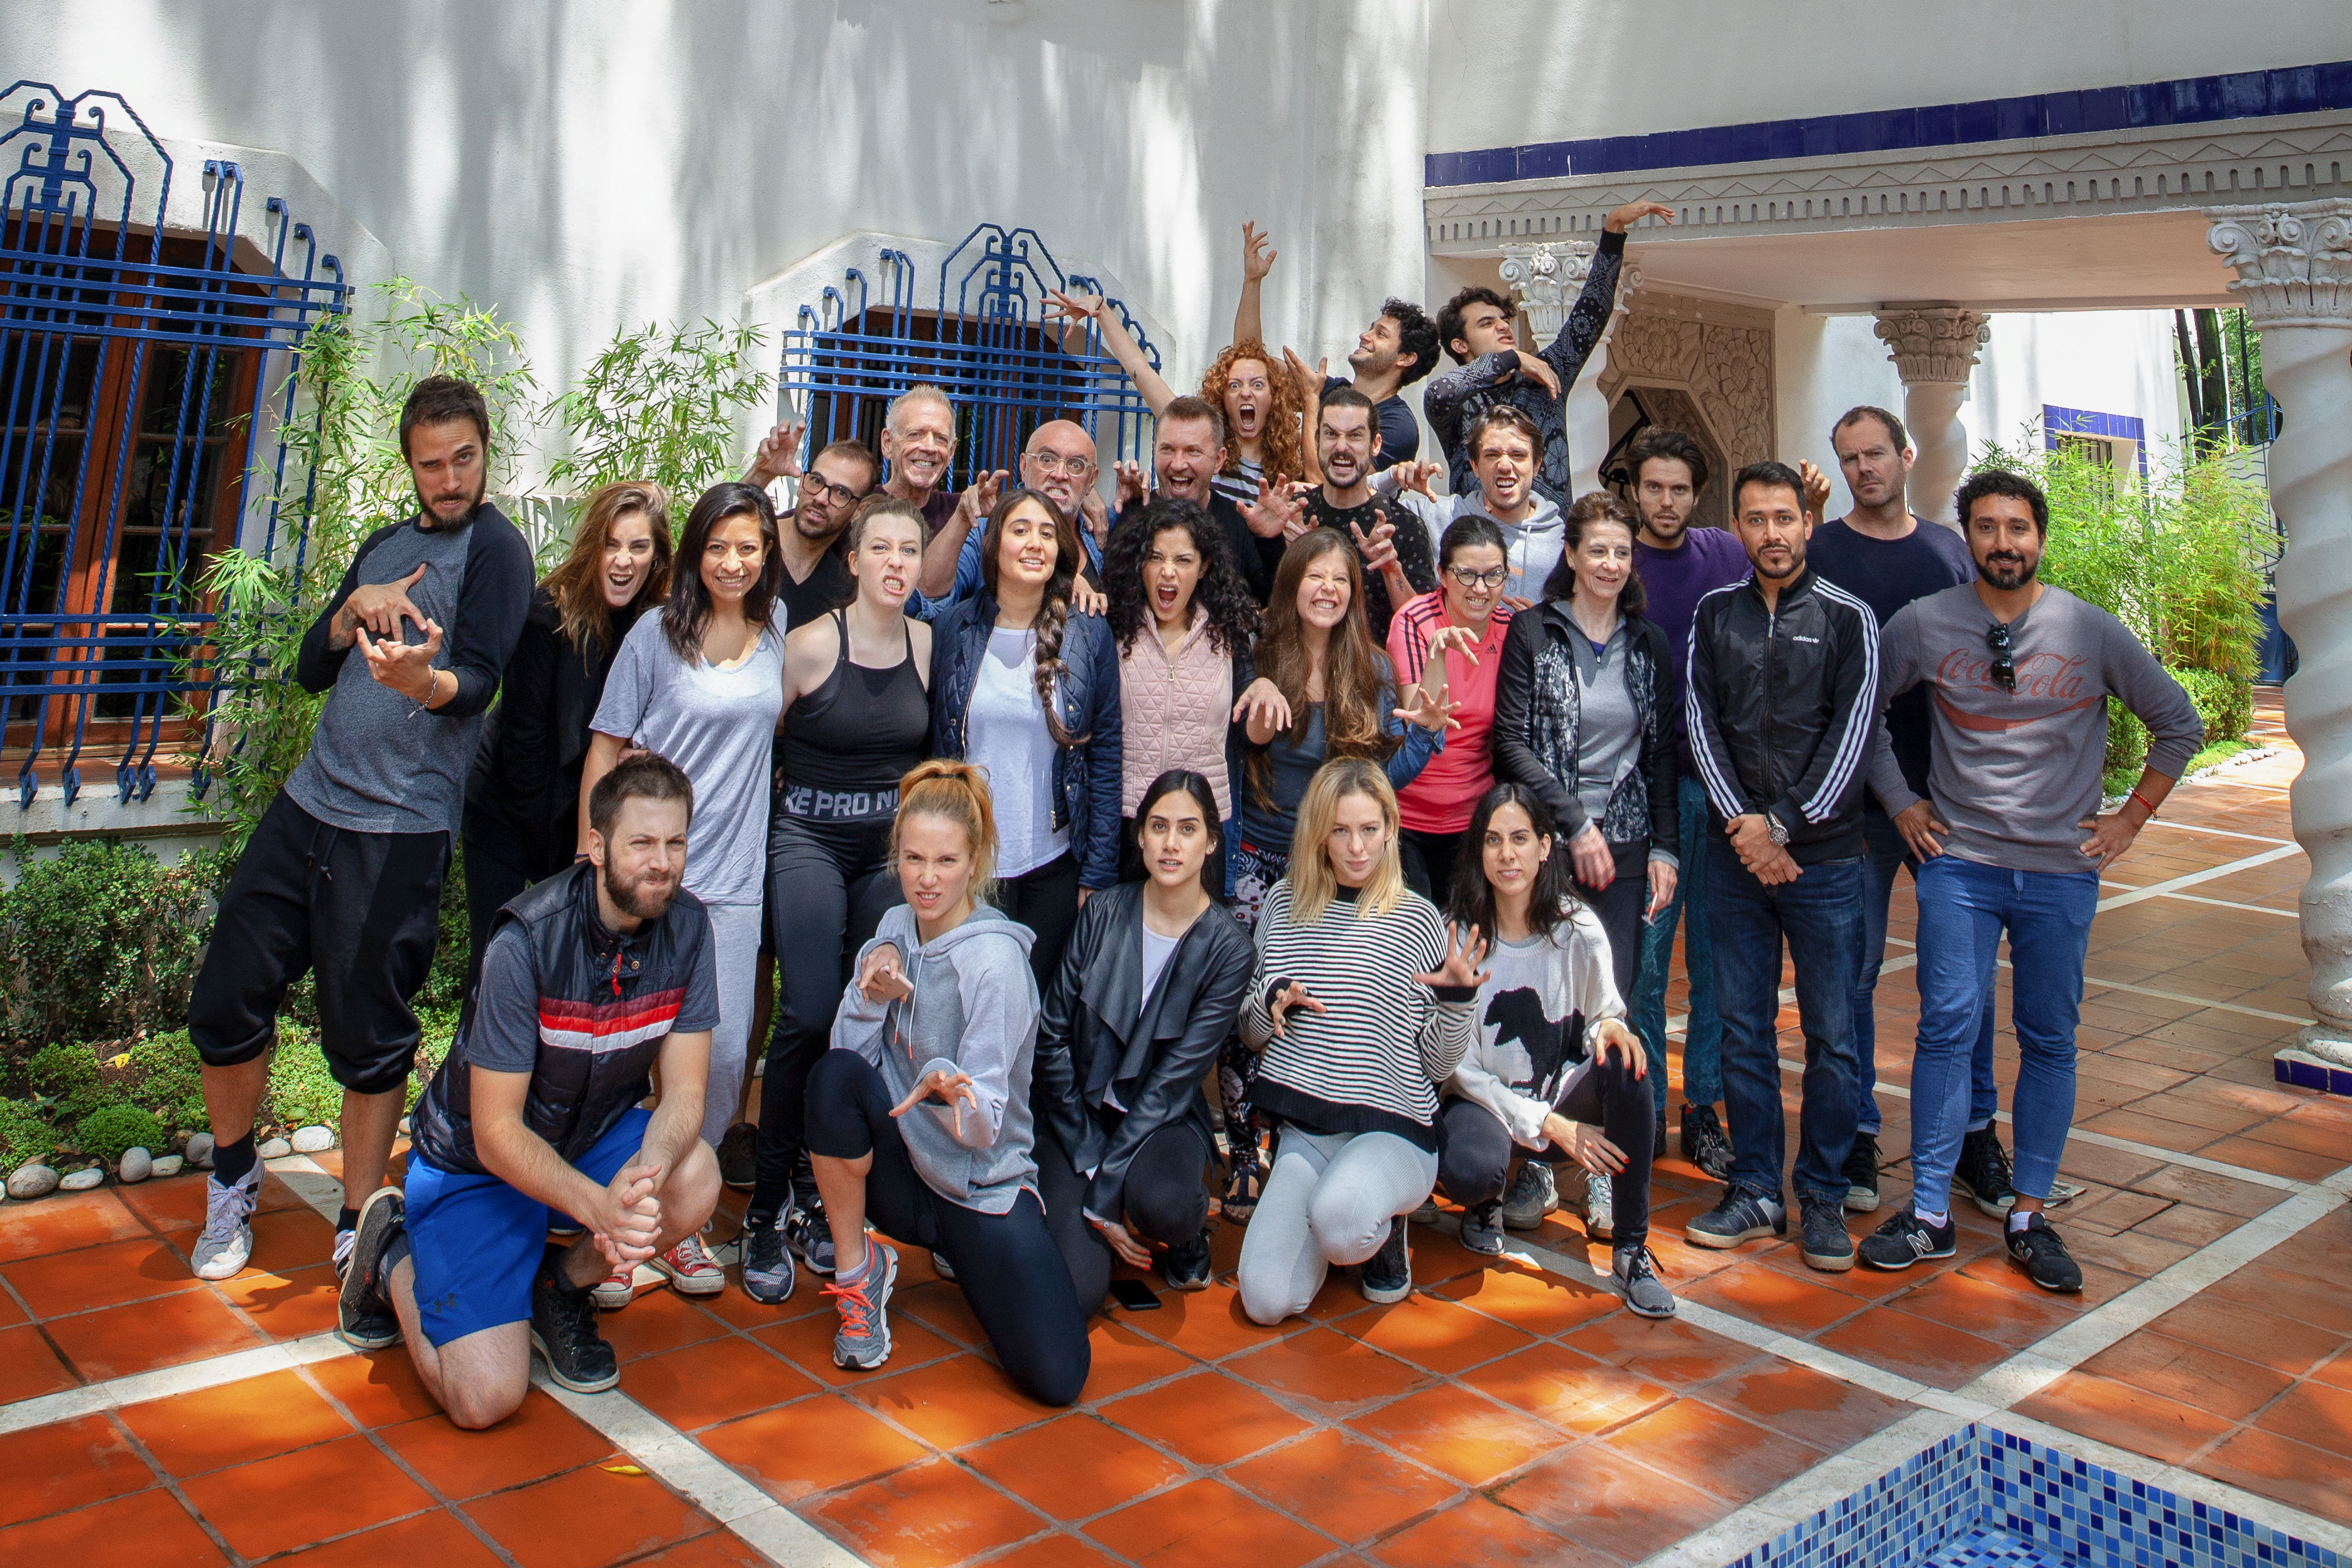 Alexander Techworks conducts first workshop in Mexico City